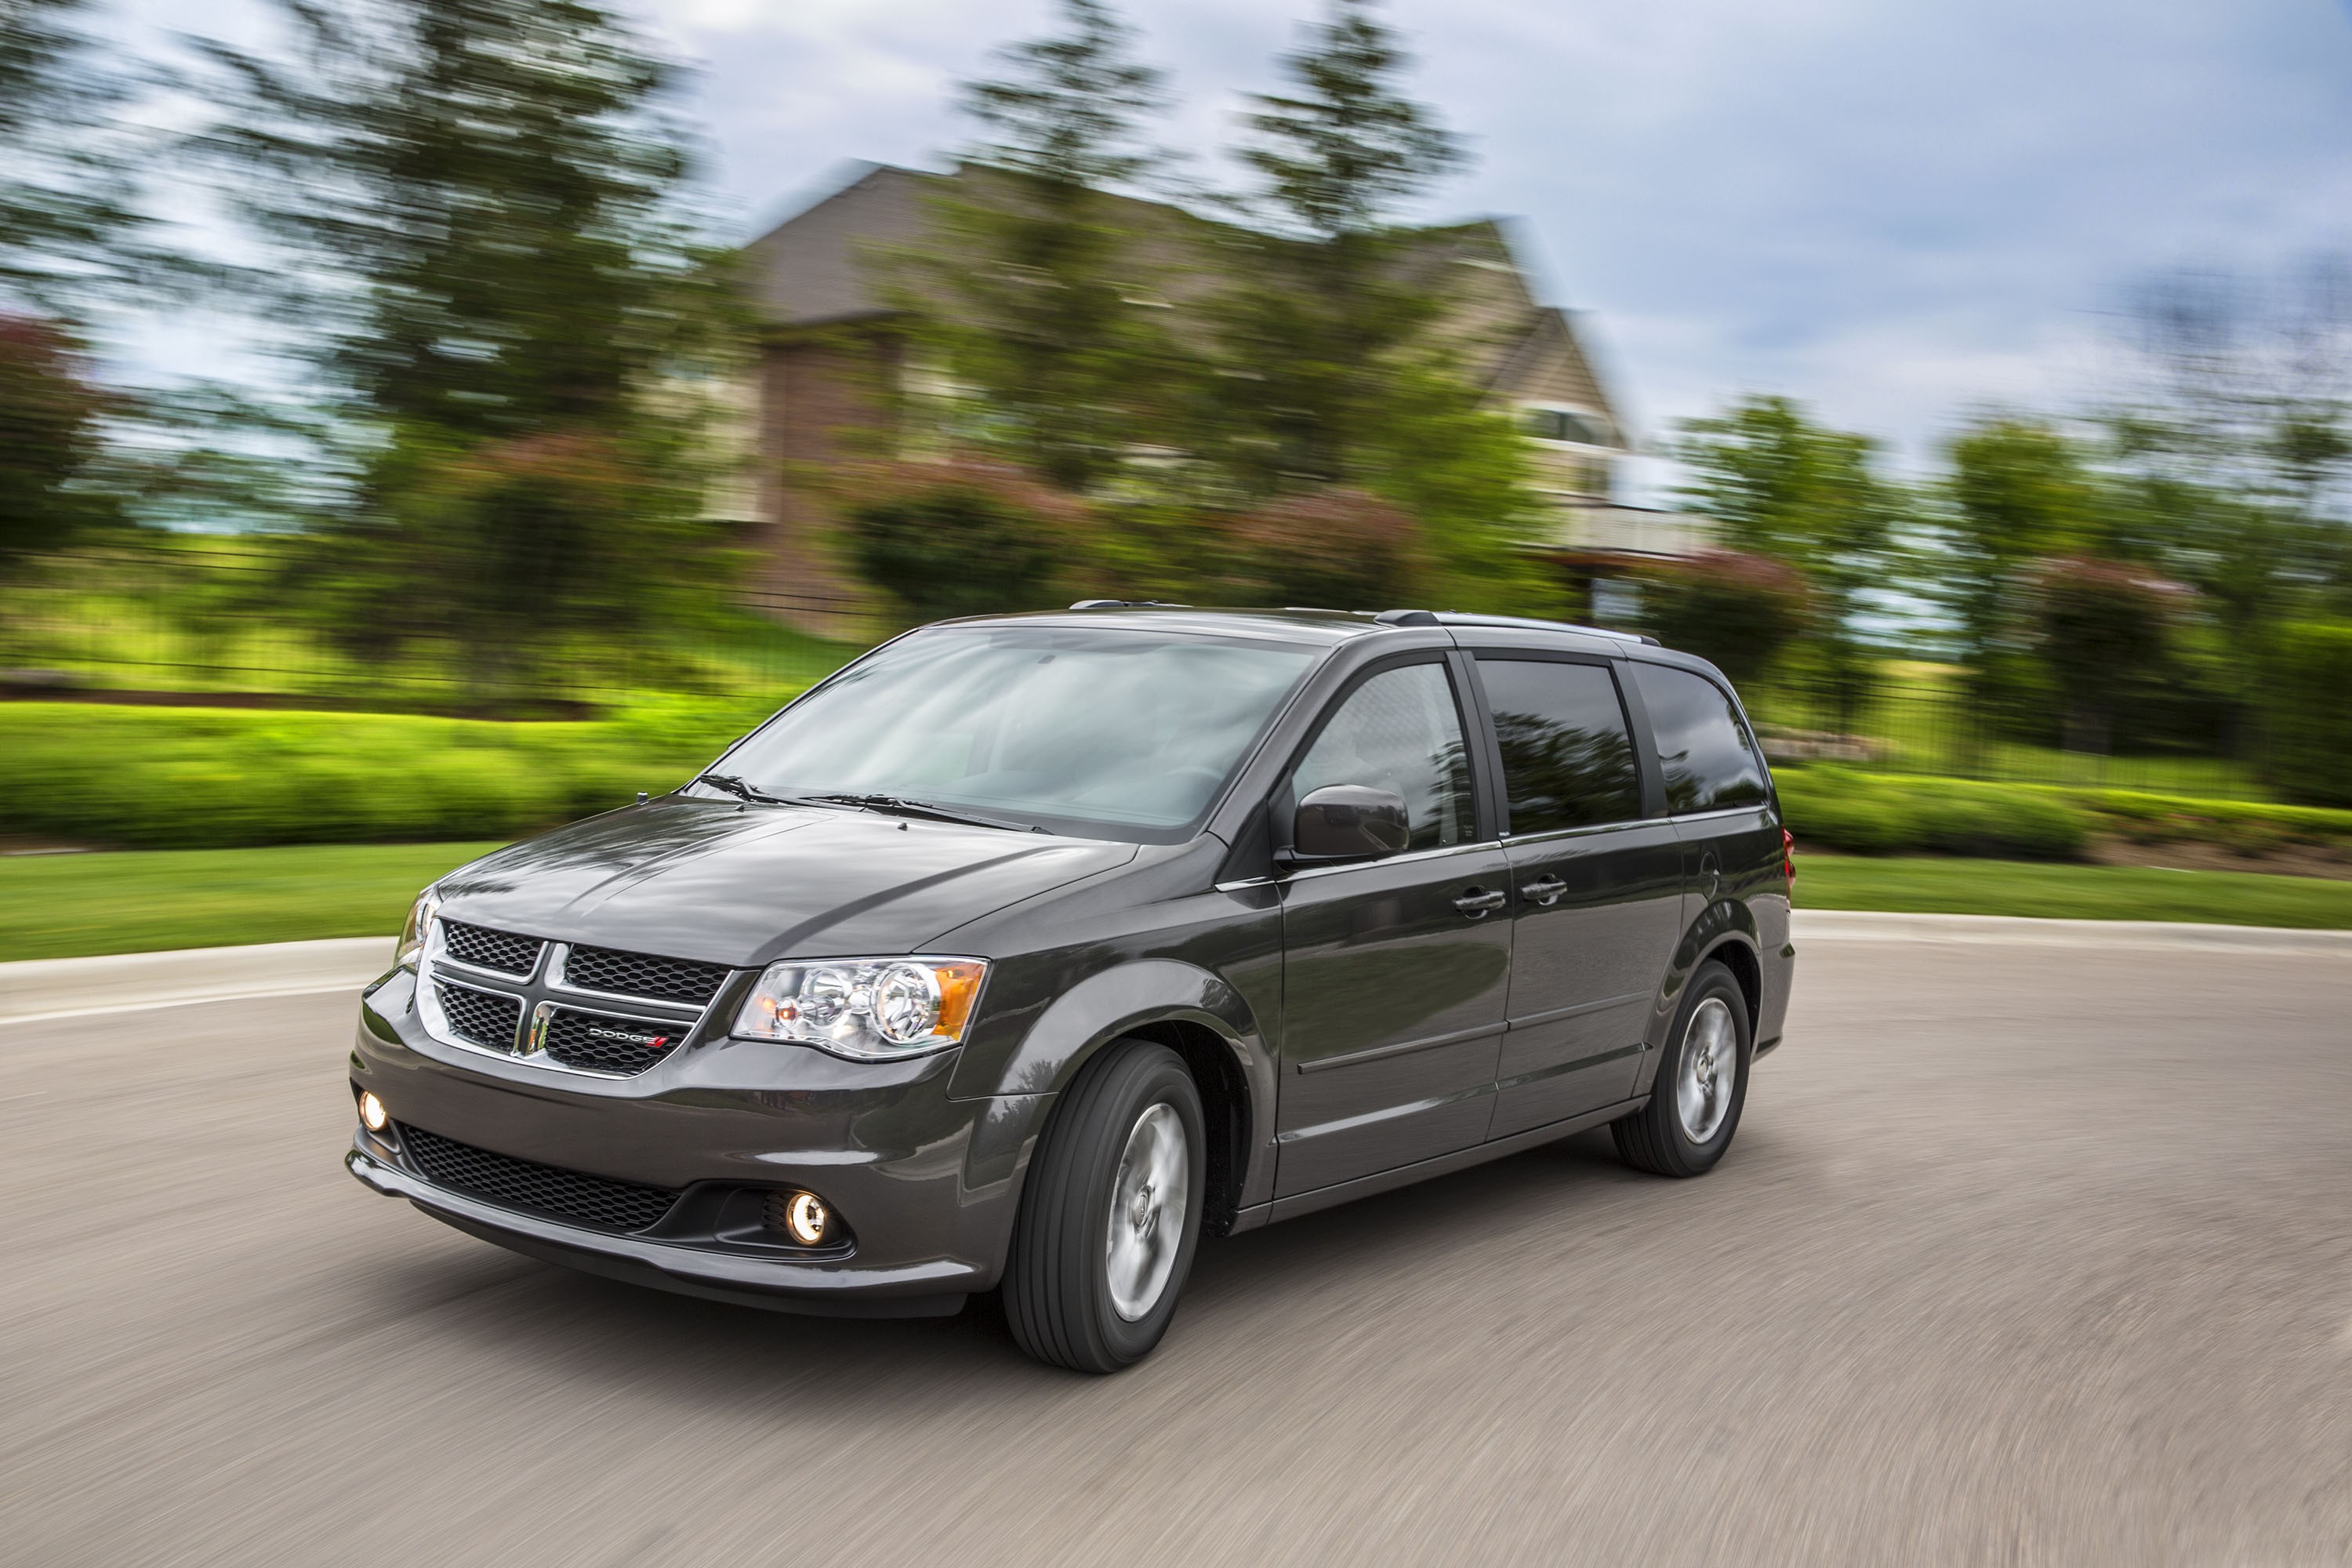 2018 Dodge Grand Caravan Review Ratings Specs Prices And Photos The Car Connection